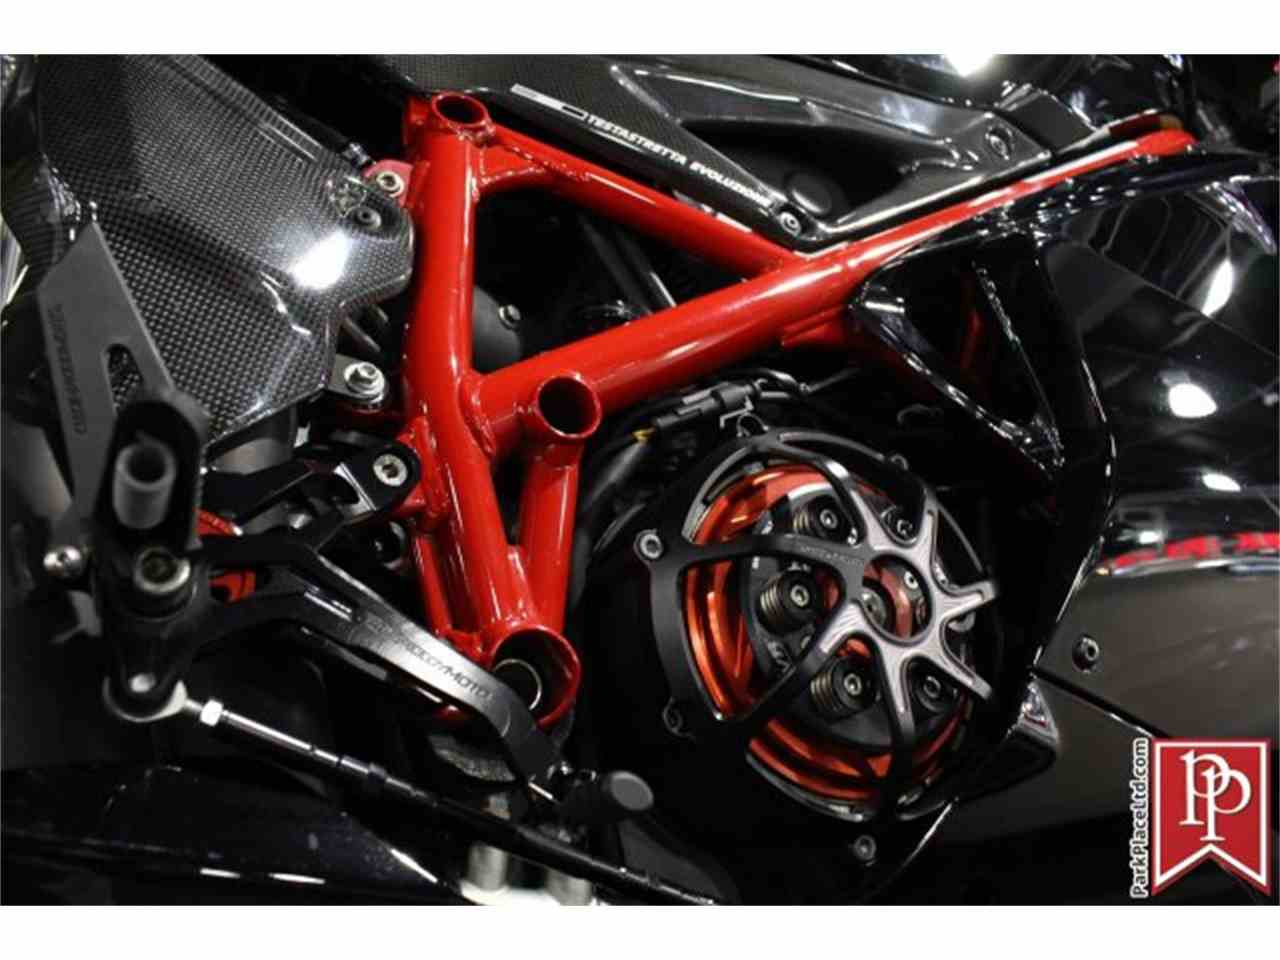 Large Picture of '08 Ducati Motorcycle - $16,950.00 - MZF6